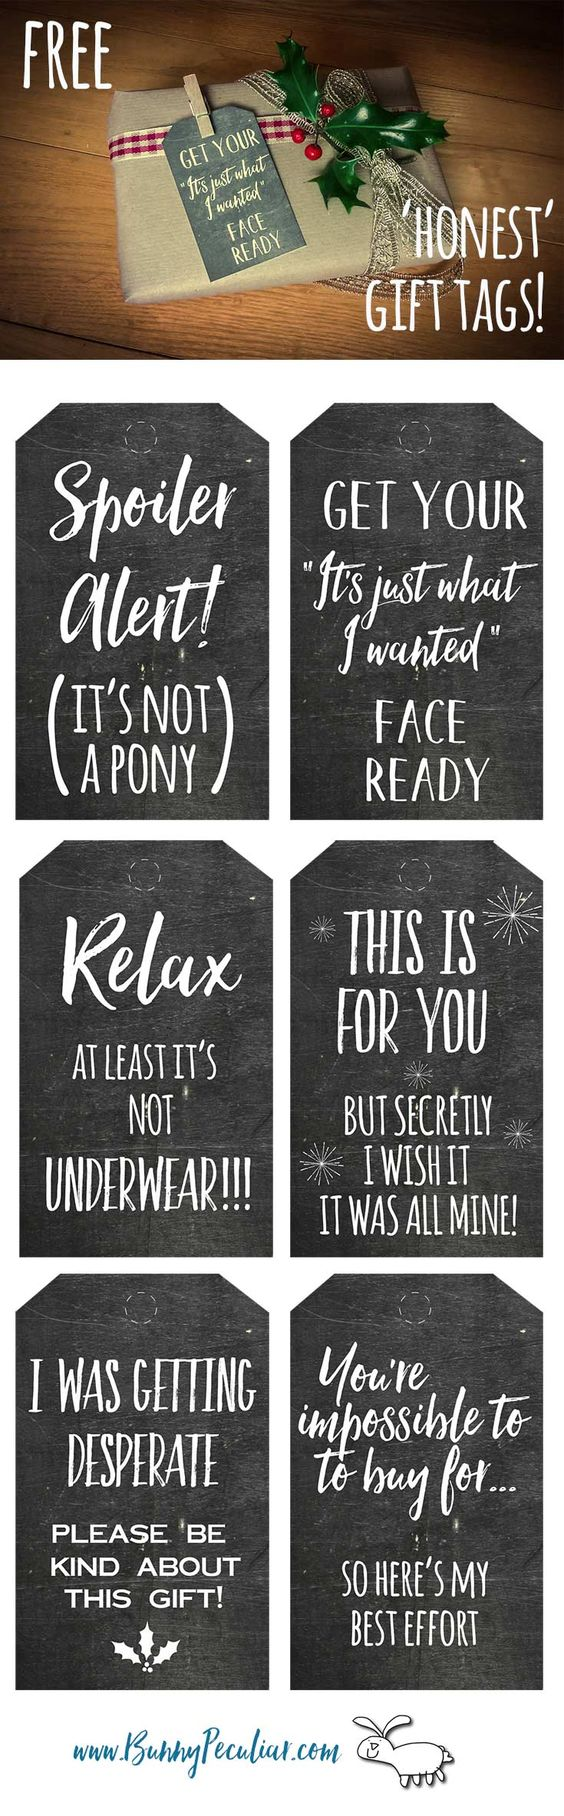 The best do it yourself gifts fun clever and unique diy craft honest and funny printable chalkboard gift tags so cute and hilarious free printables solutioingenieria Images